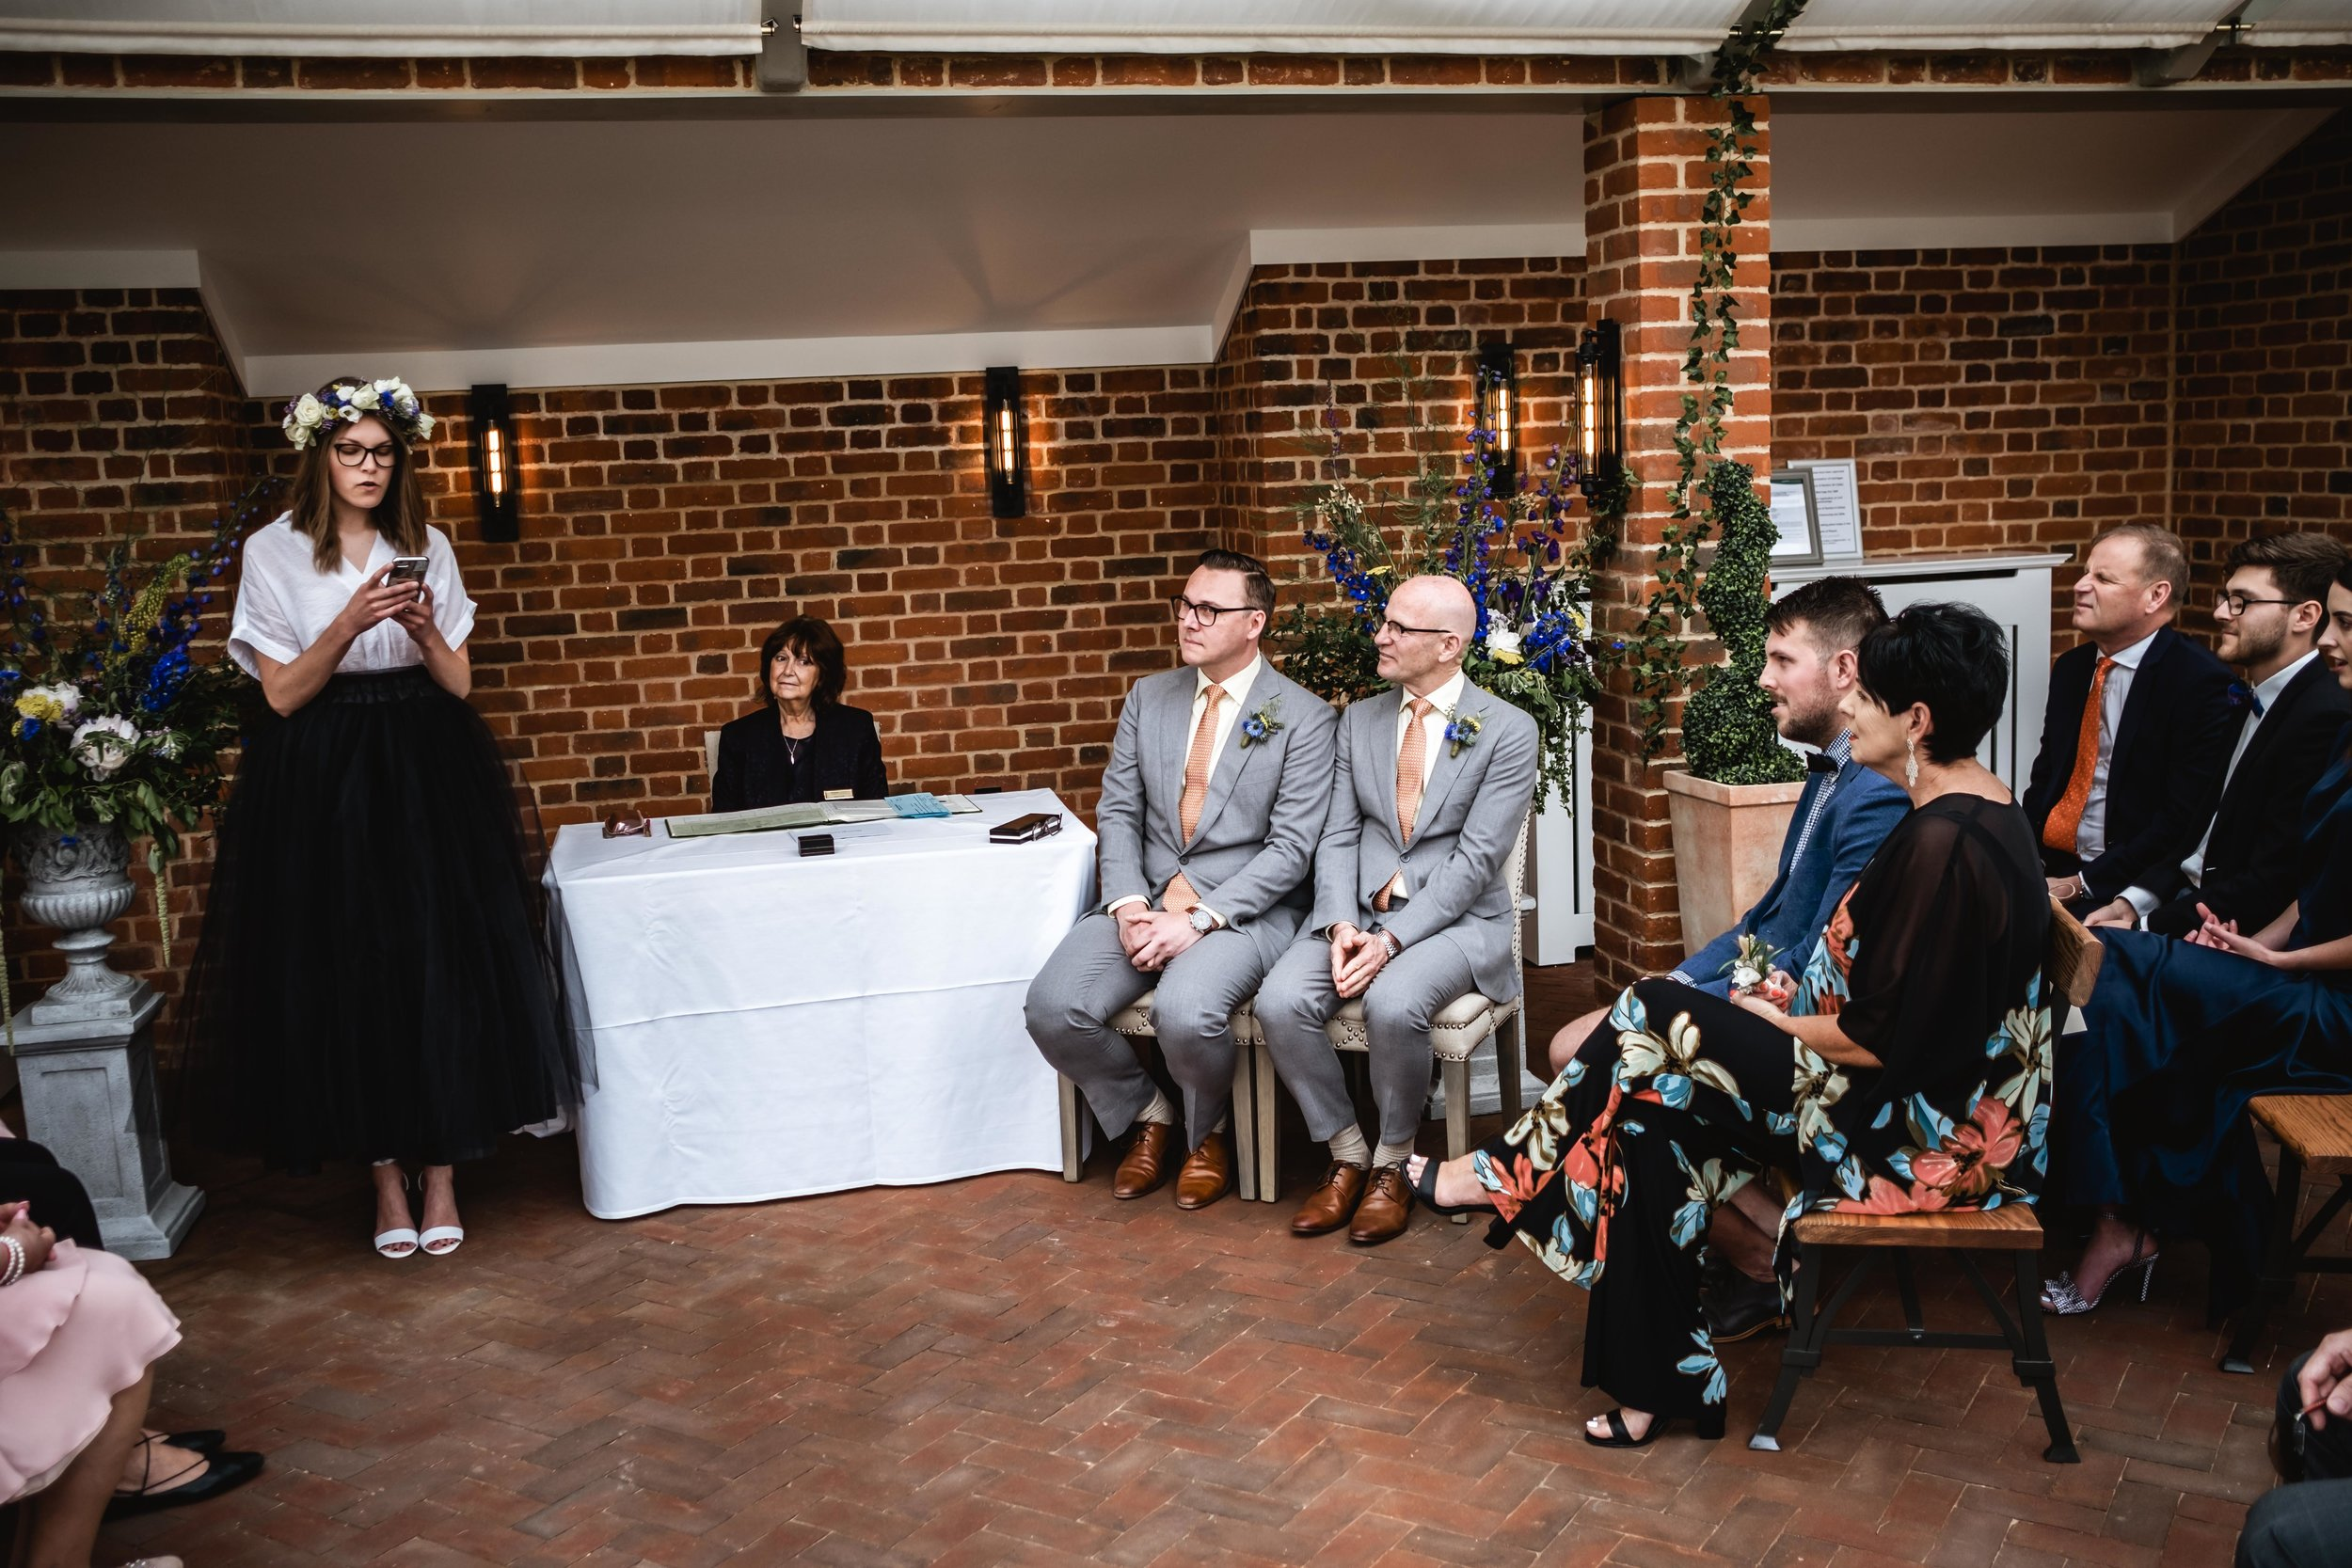 Syrencot weddings - the ceremony (52 of 237).jpg